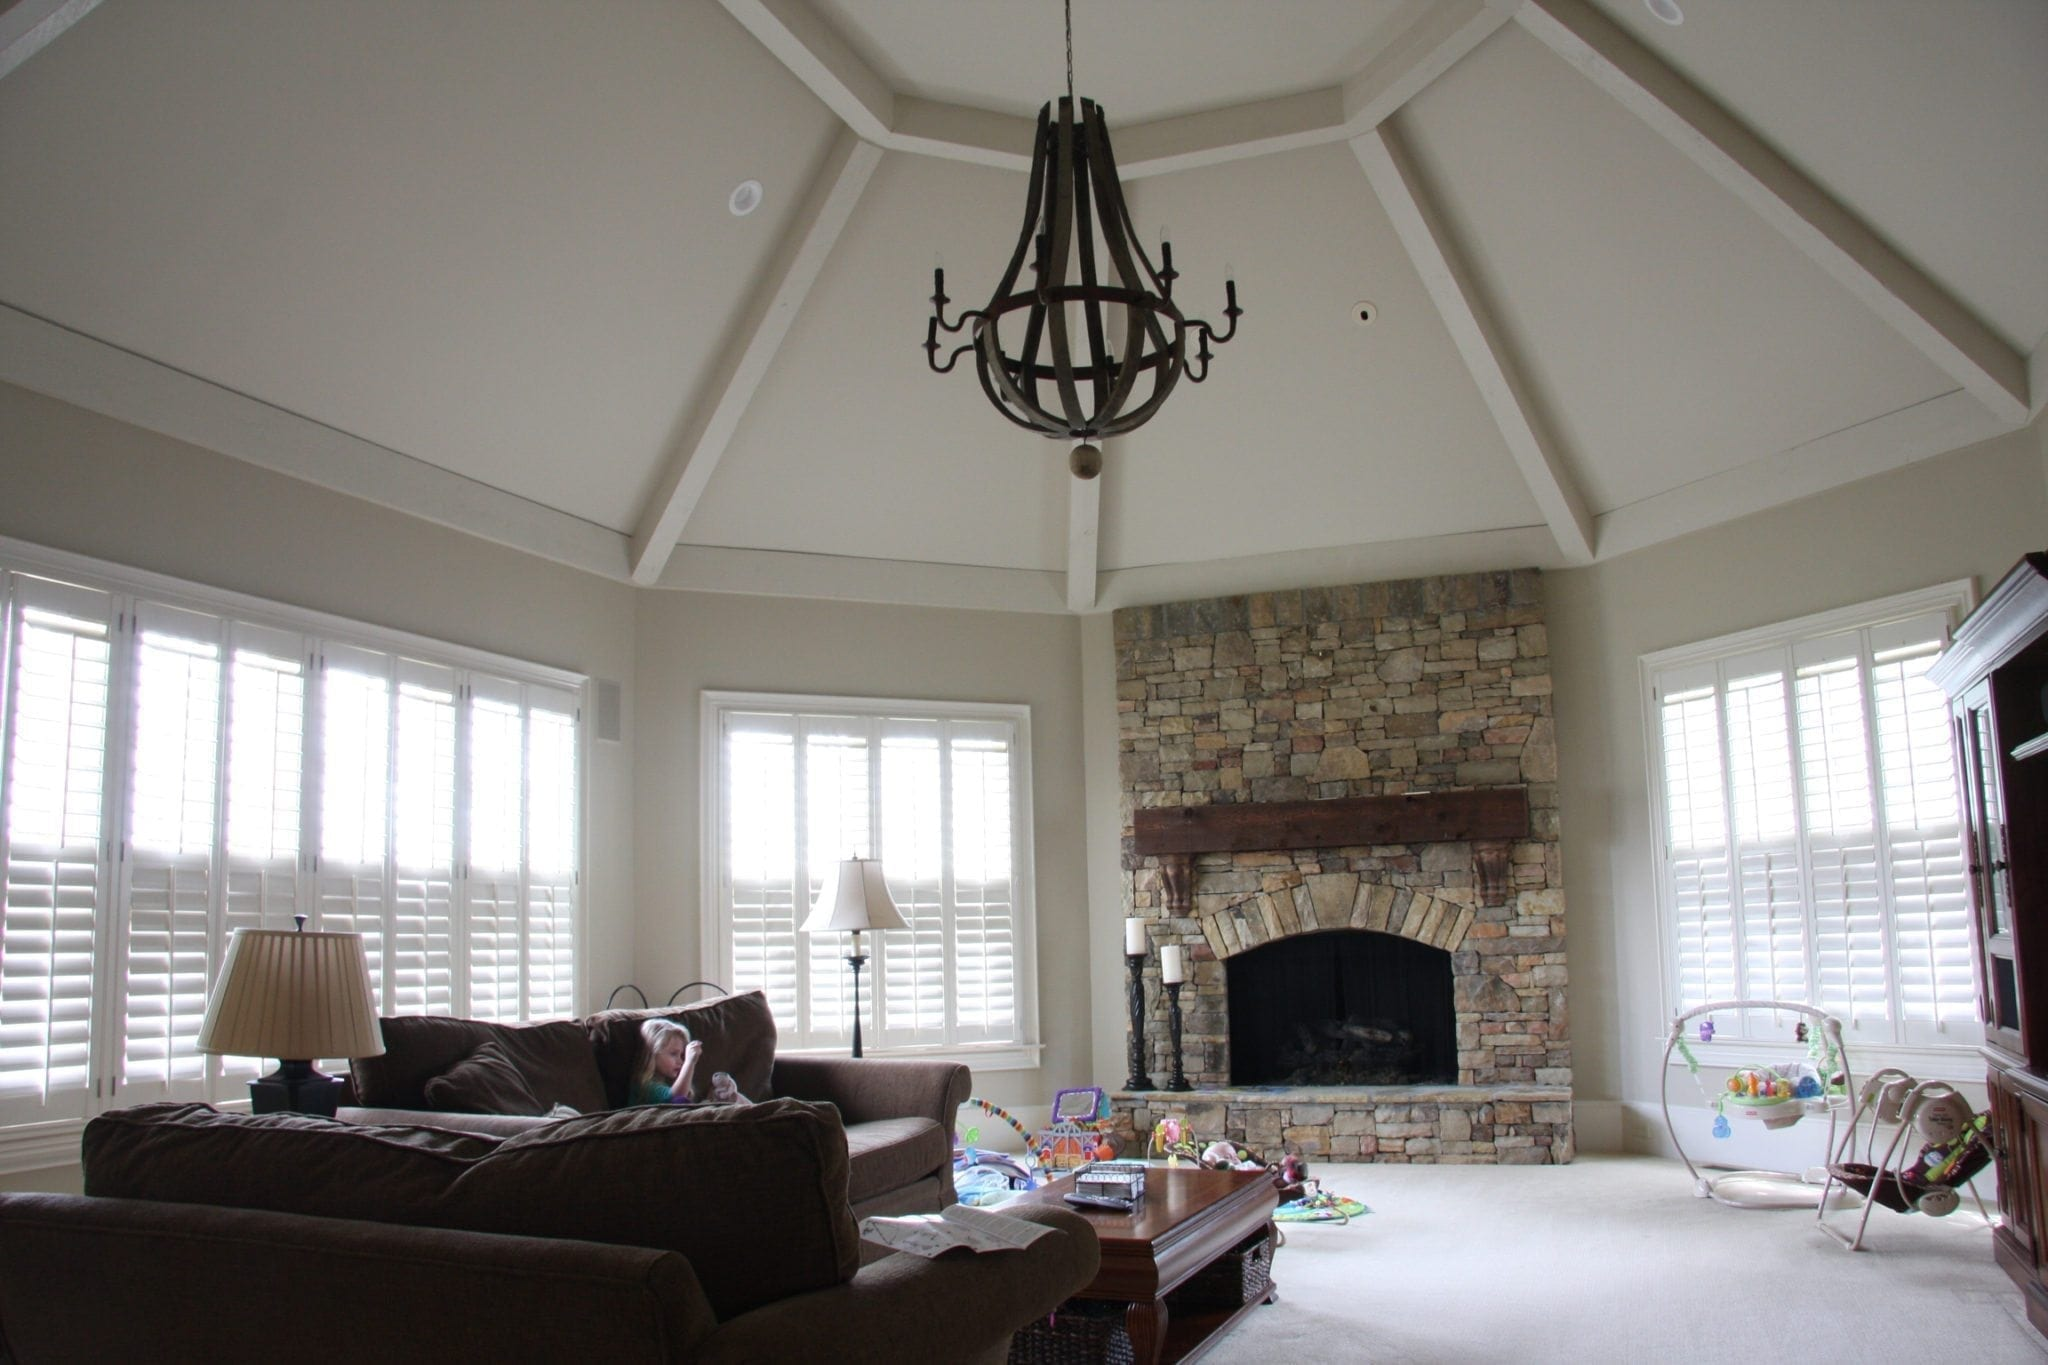 Room with painted ceiling beams in family room with stone fireplace.